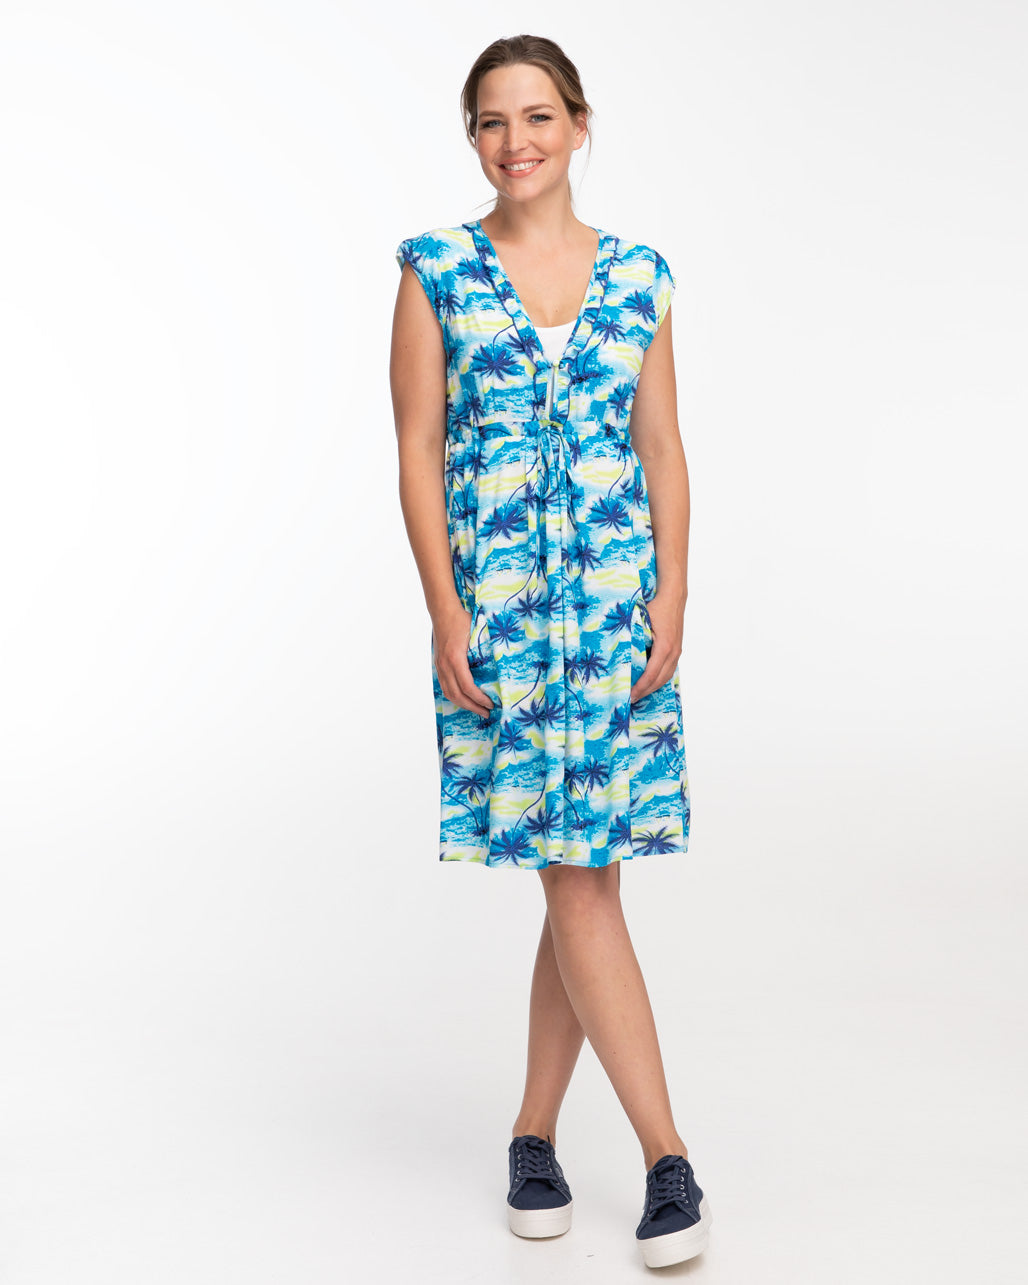 Hawaiian Print Nursing Dress by Peachymama